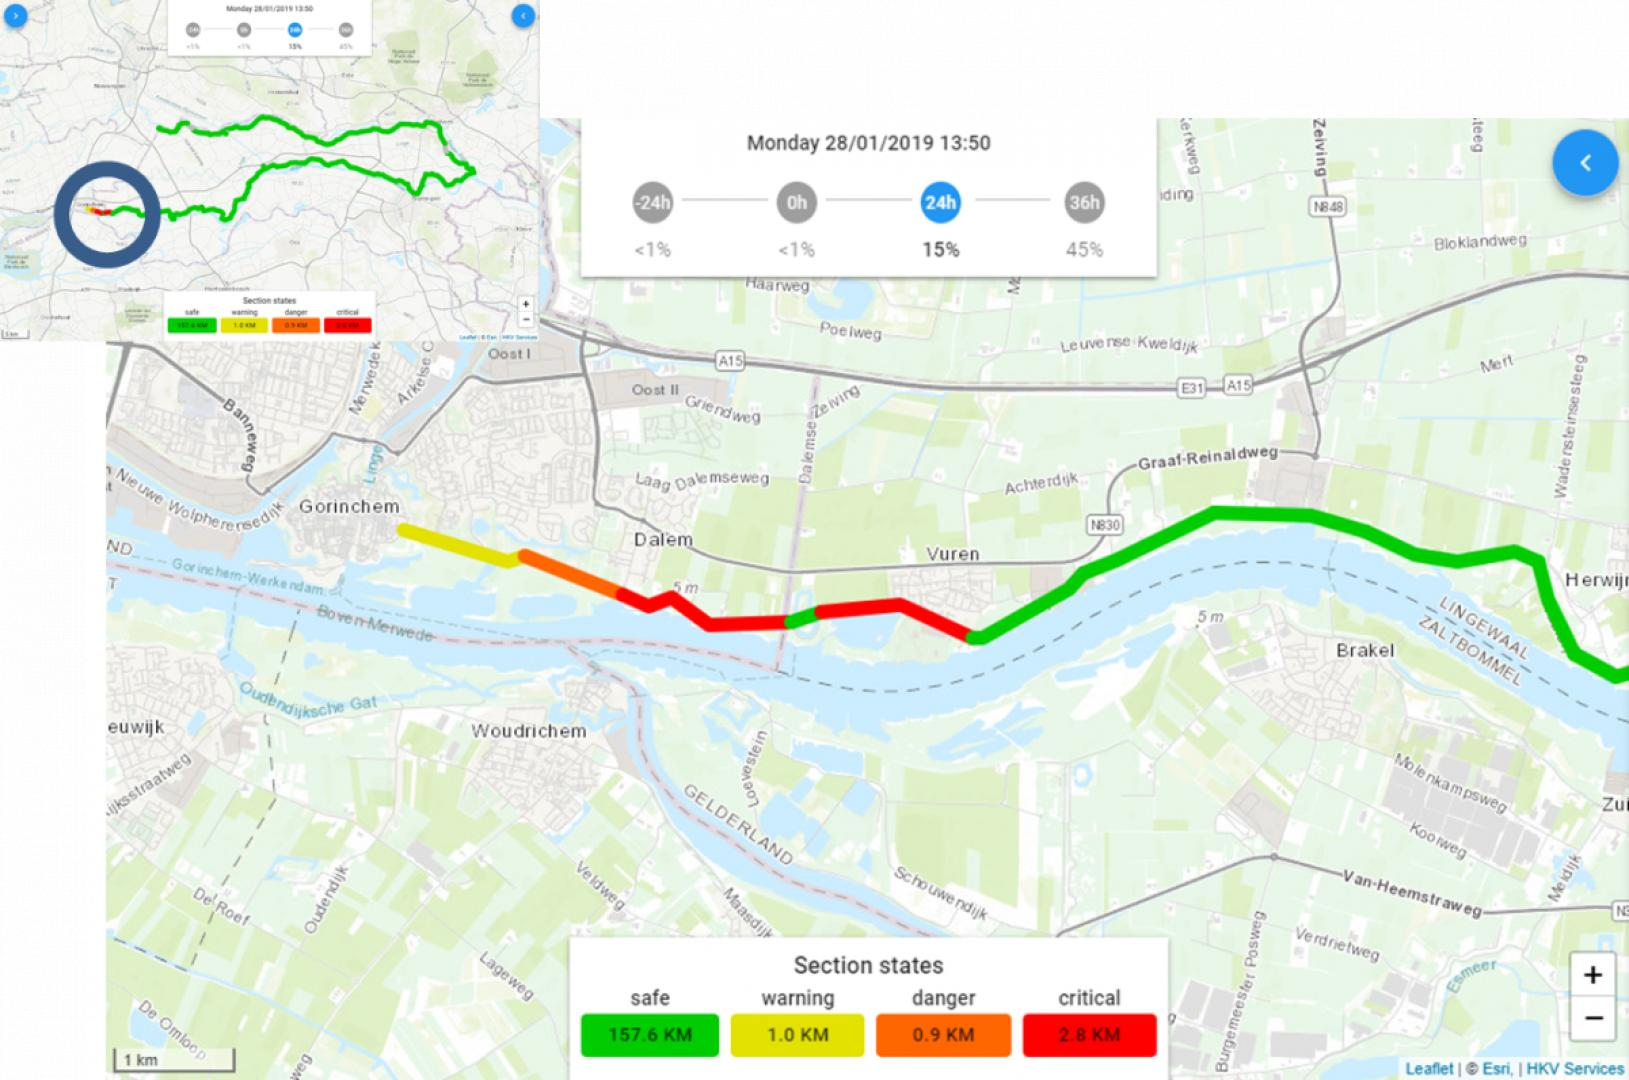 Real Time Flood Risk Assessement Viewer - levees